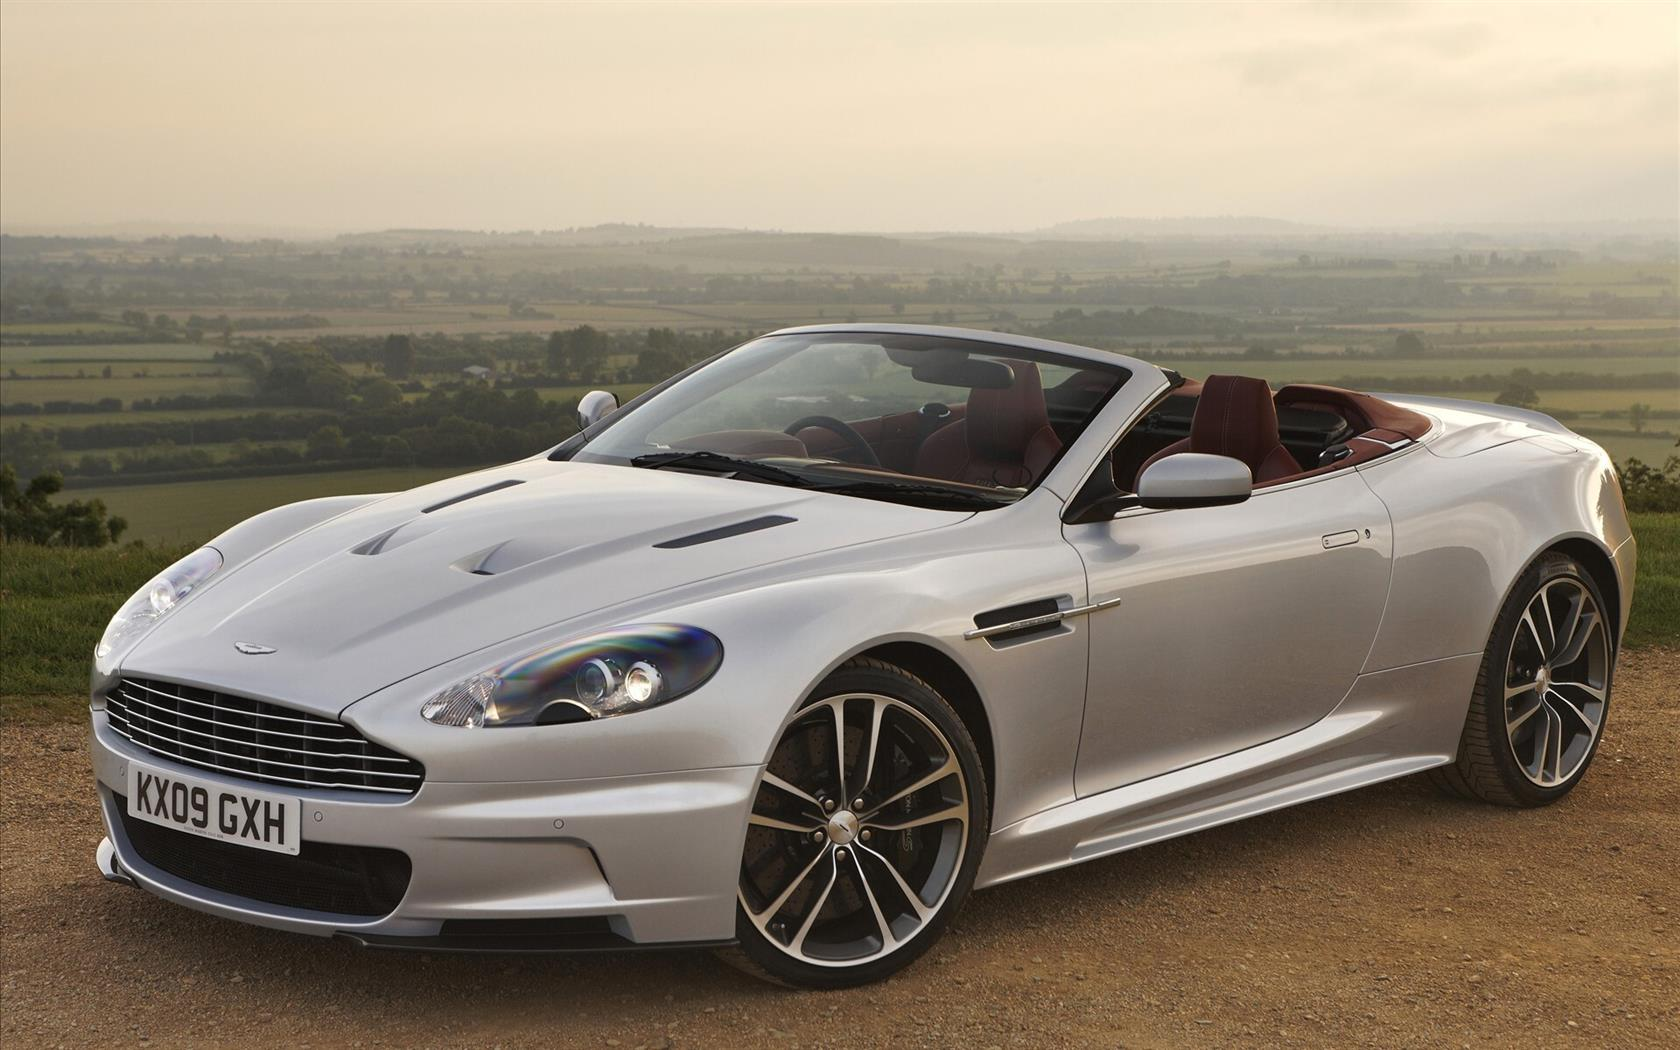 1680x1050 Luxury Convertible Aston Martin Car Wallpaper